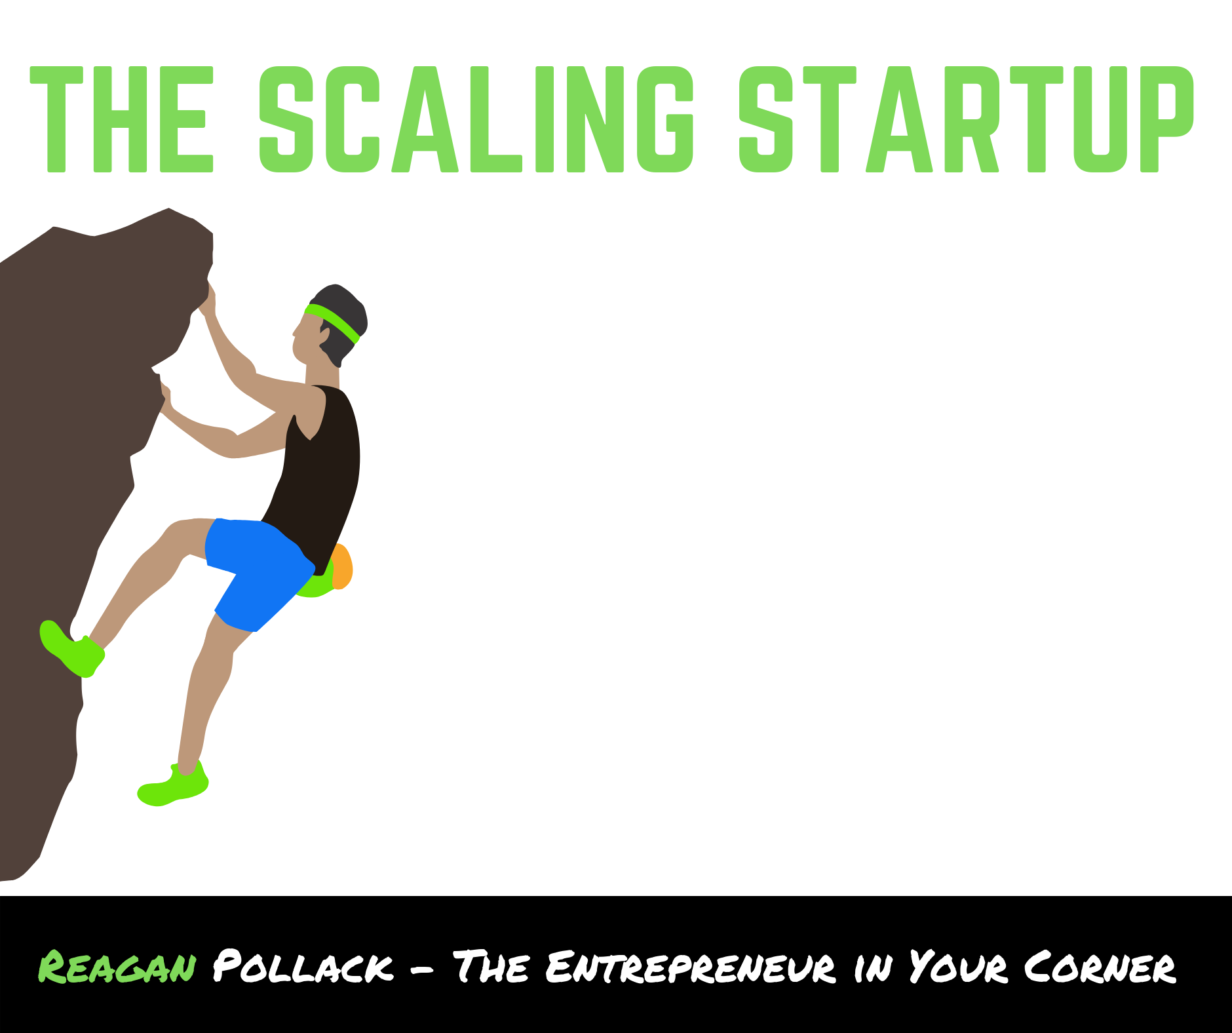 How to Scale your Startup - Reagan Pollack